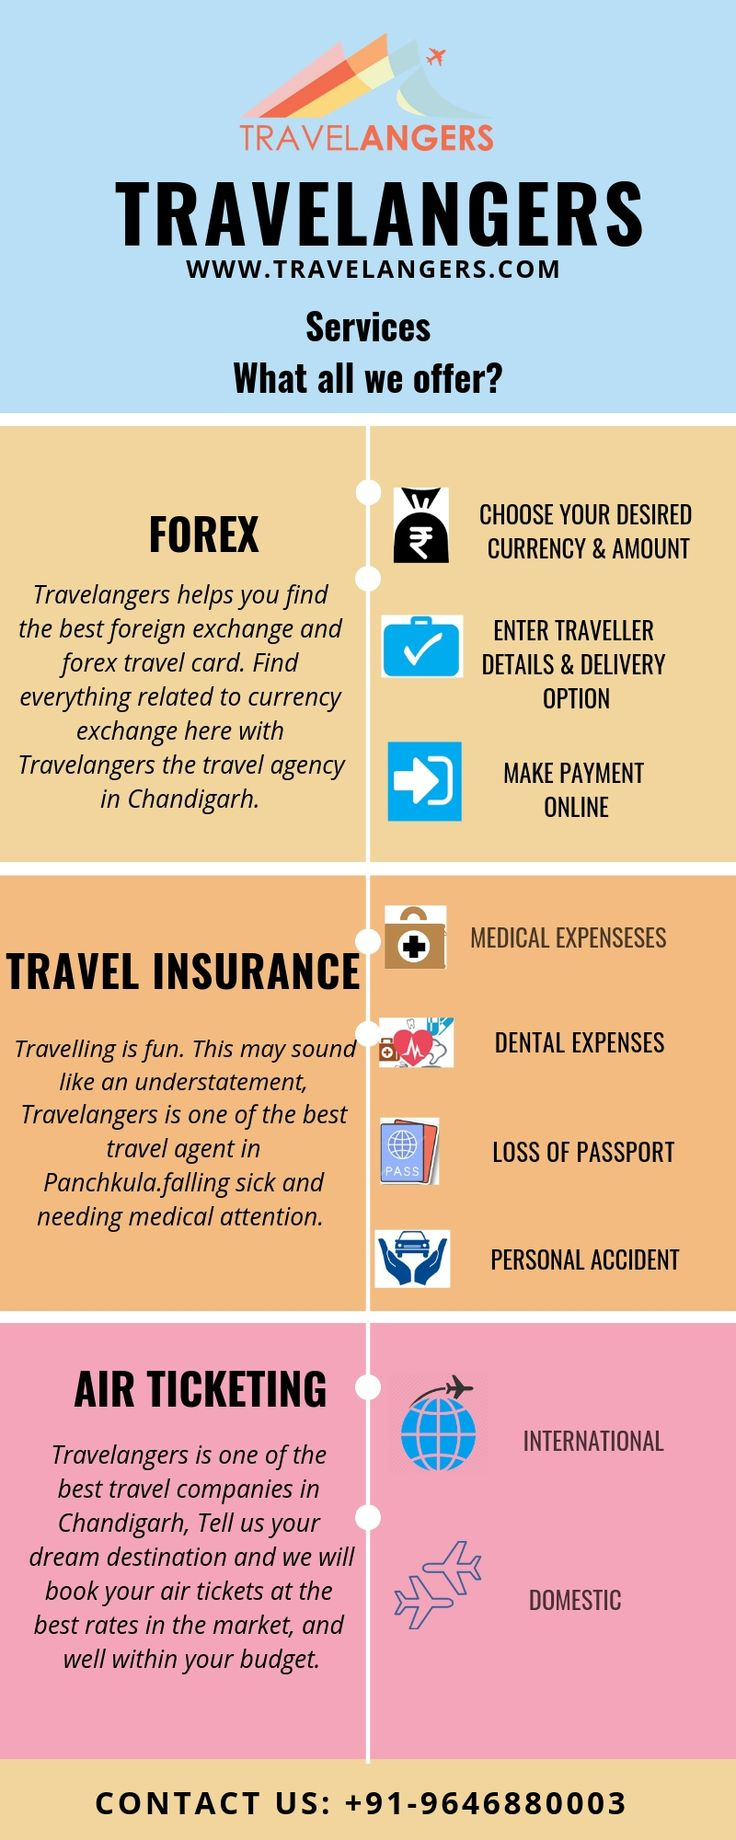 Best travel agent in chandigarh and panchkula travel